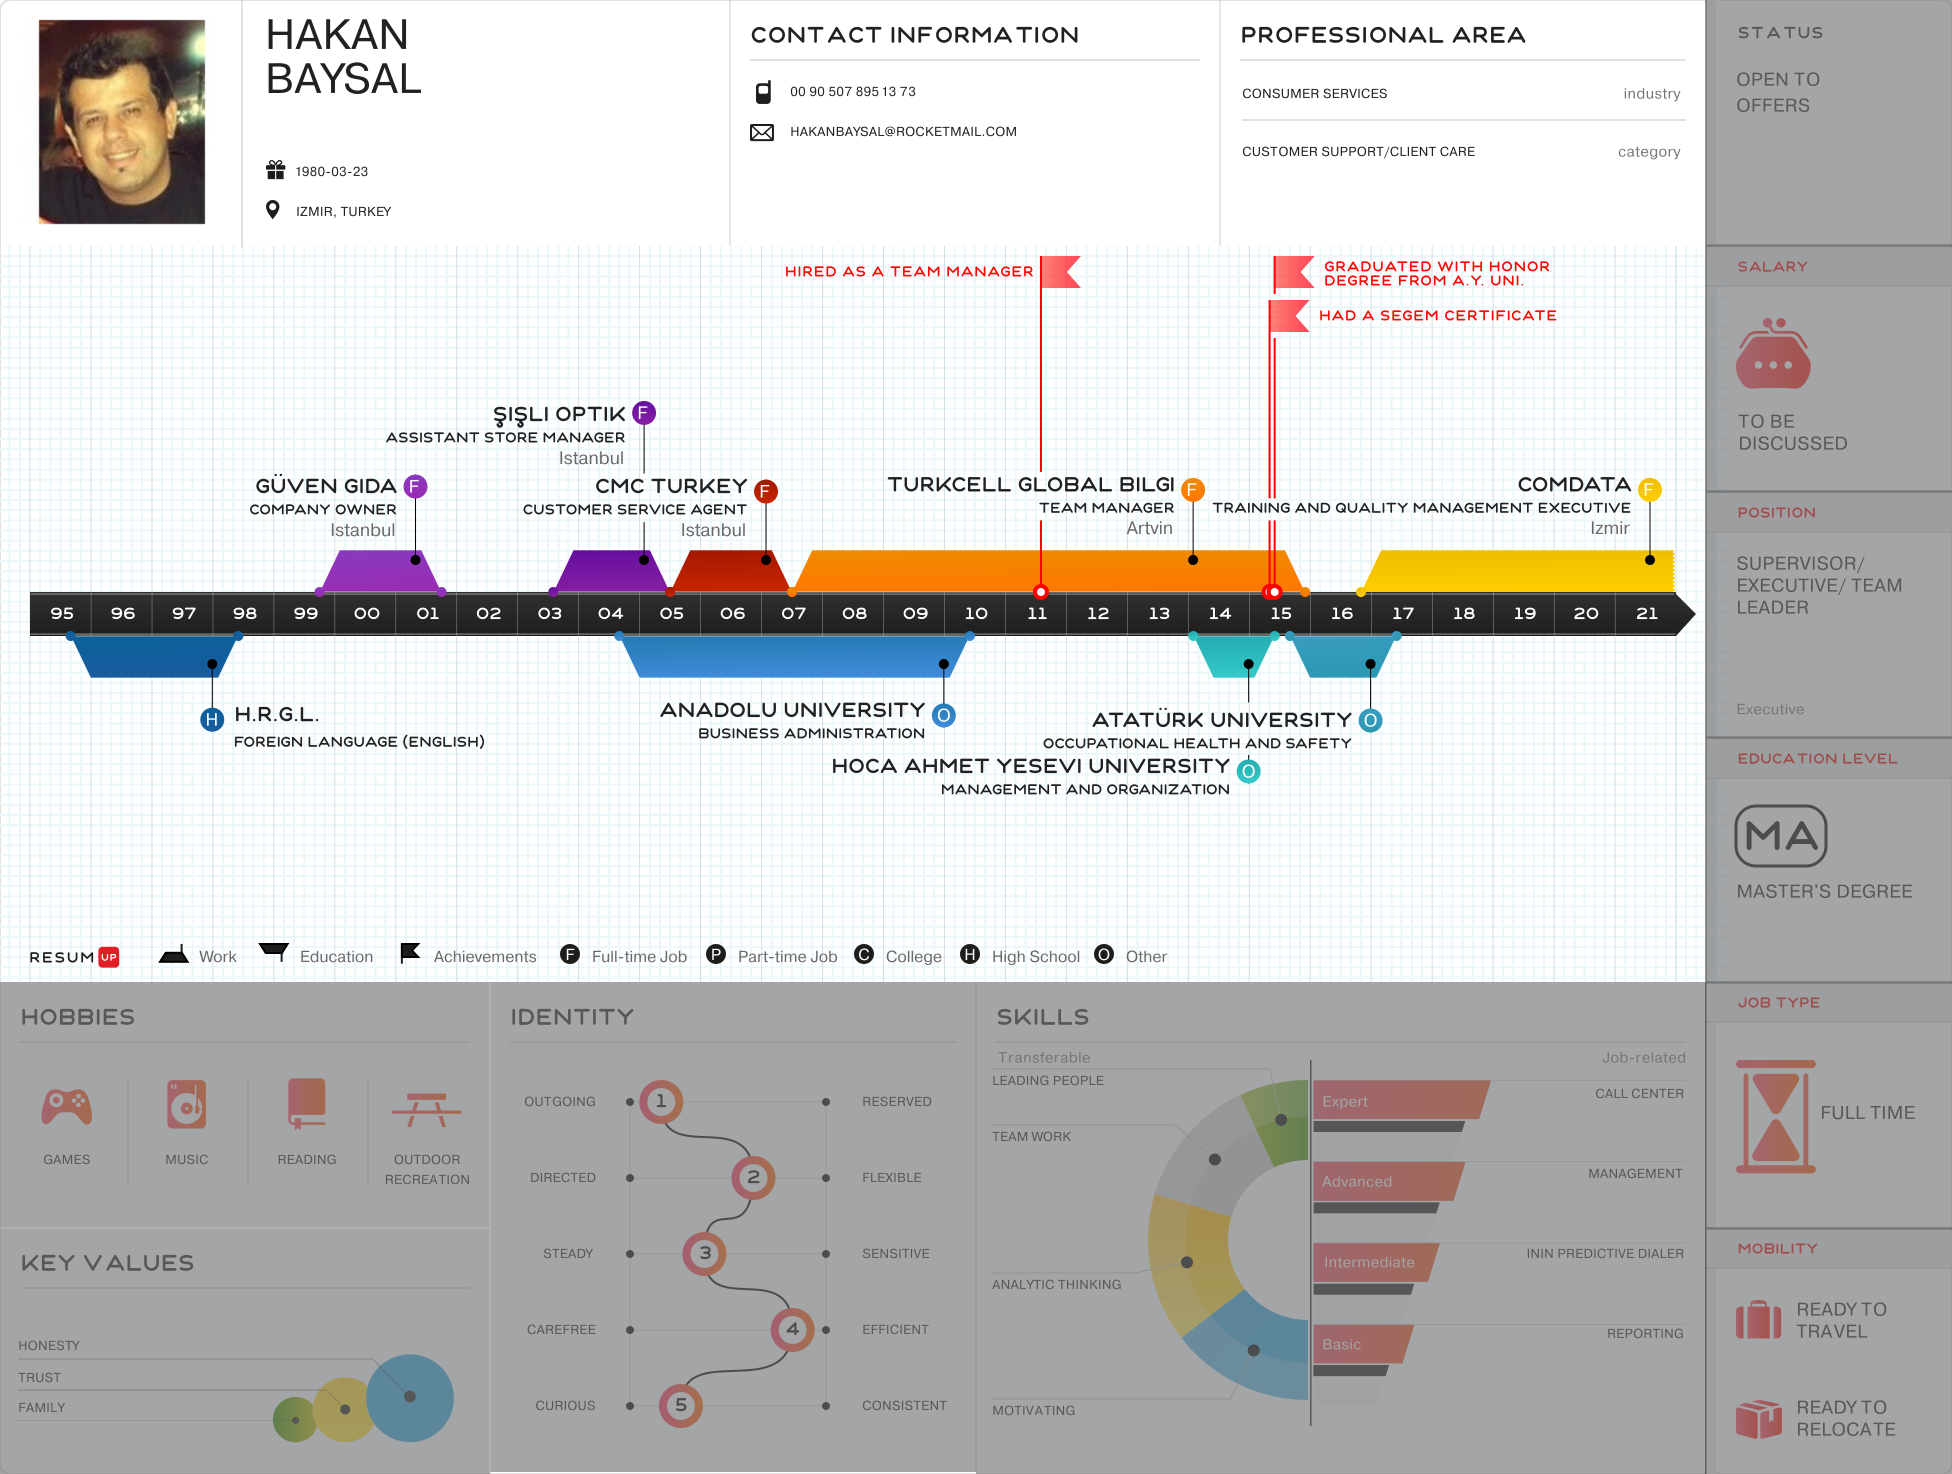 HAKAN BAYSAL - Visual Infographic resume